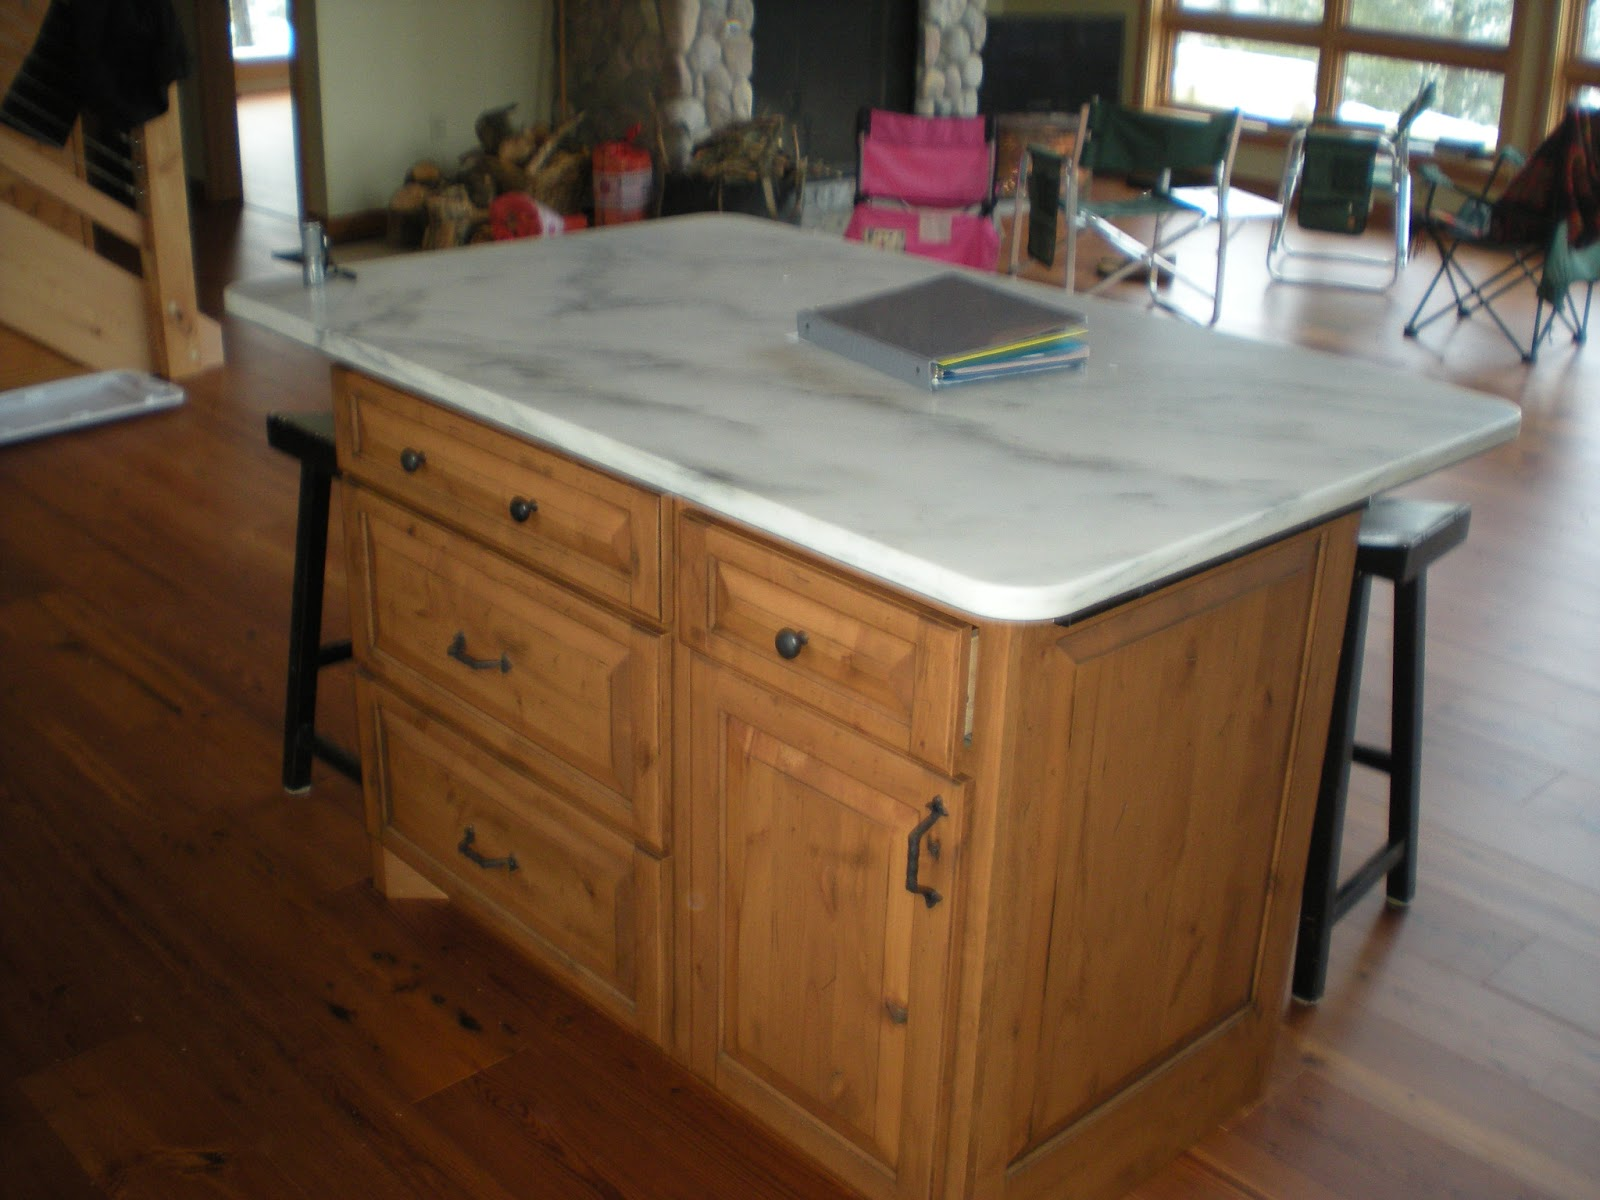 Kitchen Island Marble Top Polish For Cabinets  Huisman Concepts